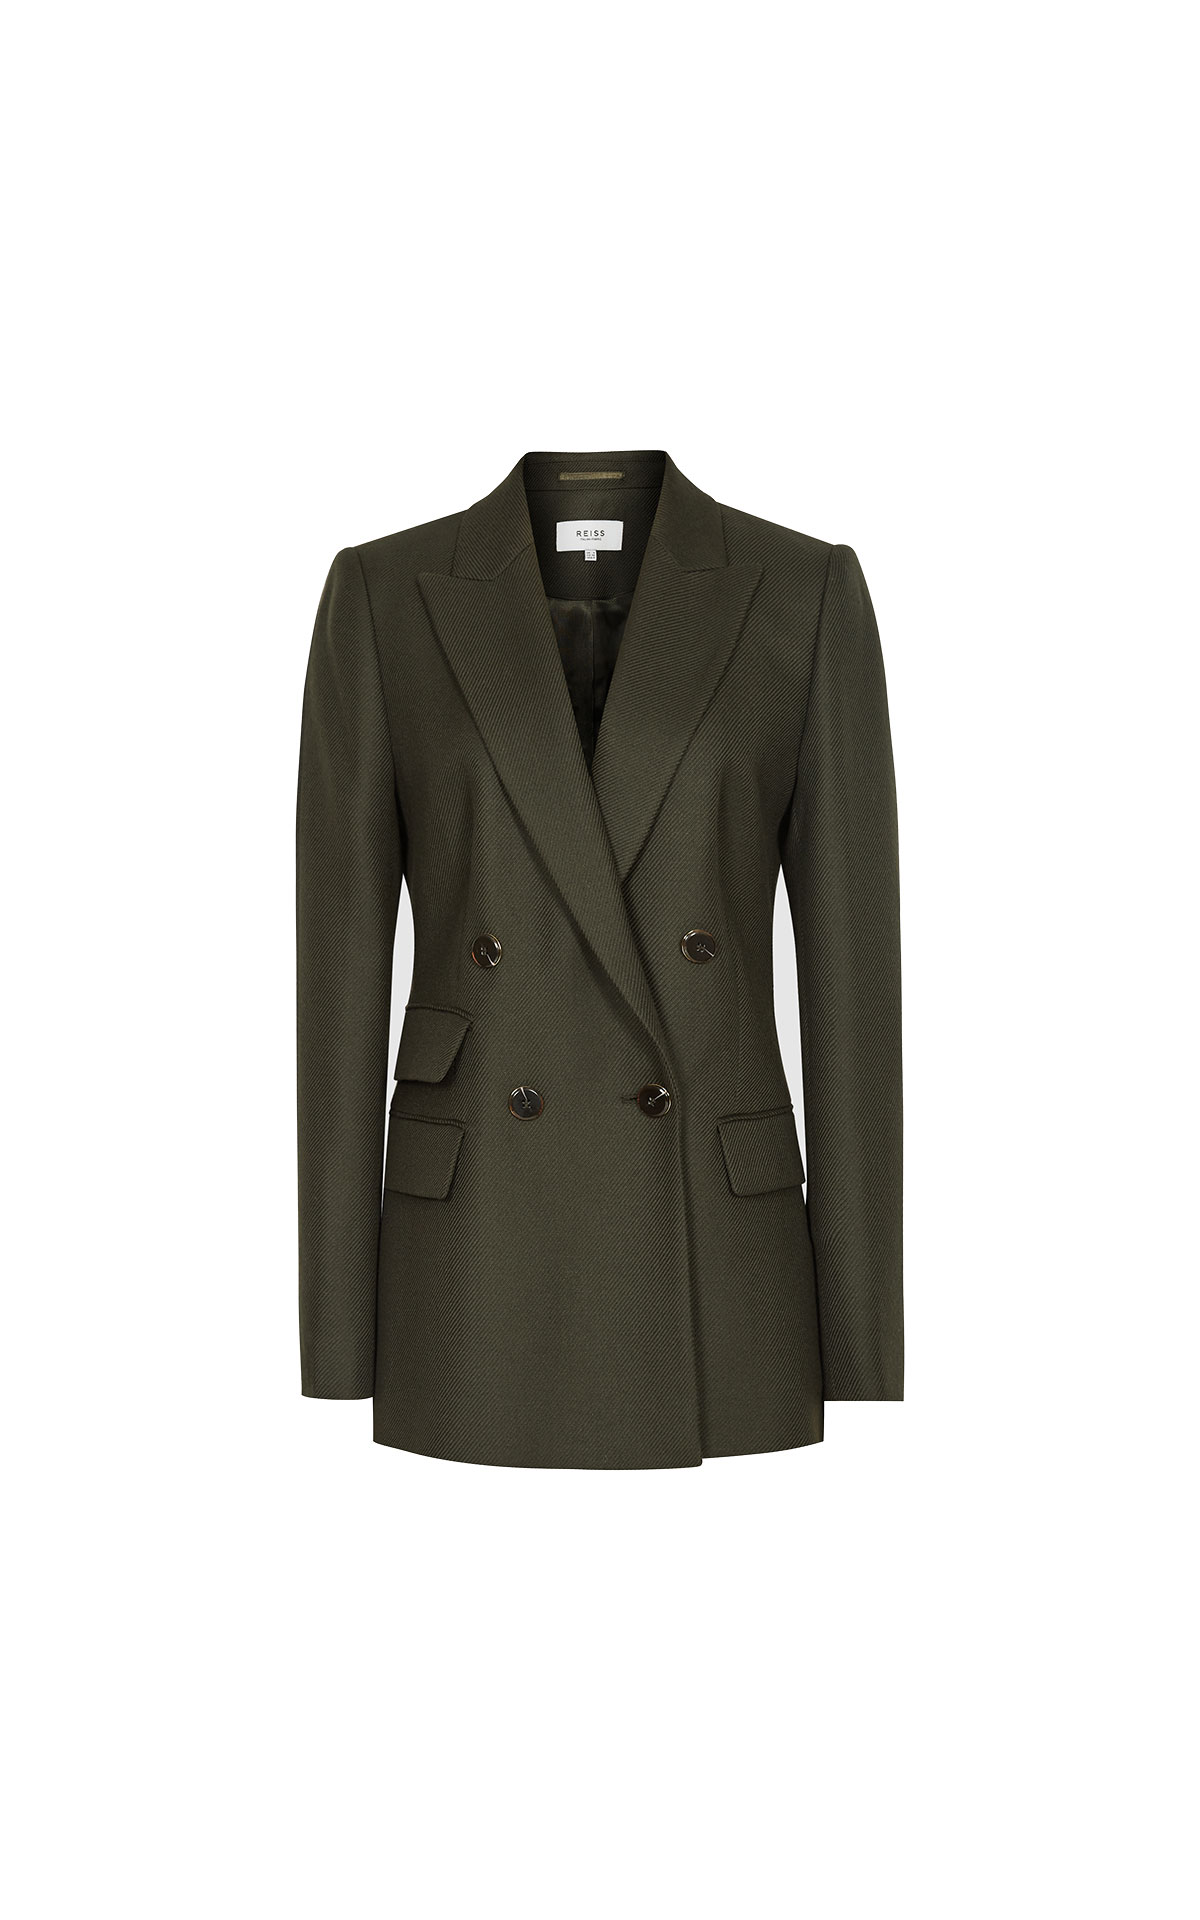 Reiss Ledbury twill blazer from Bicester Village